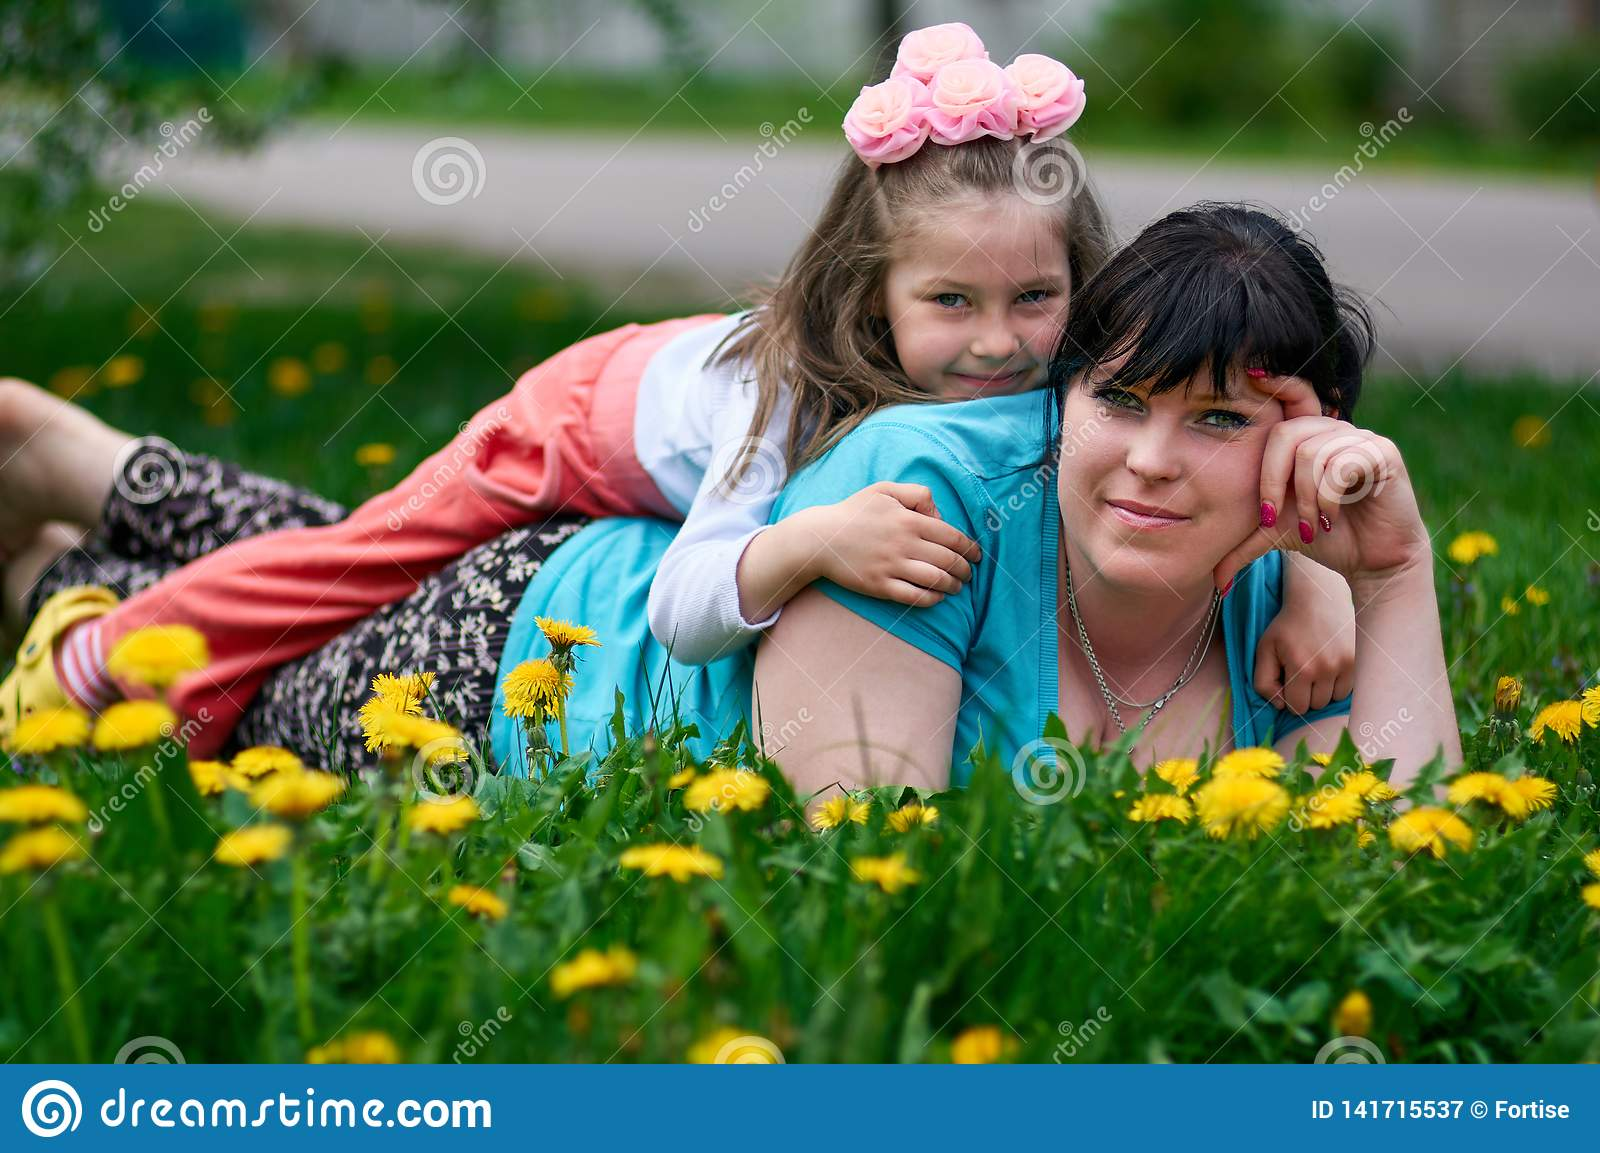 Happy young mother with baby enjoys summer time in a dandelion meadow